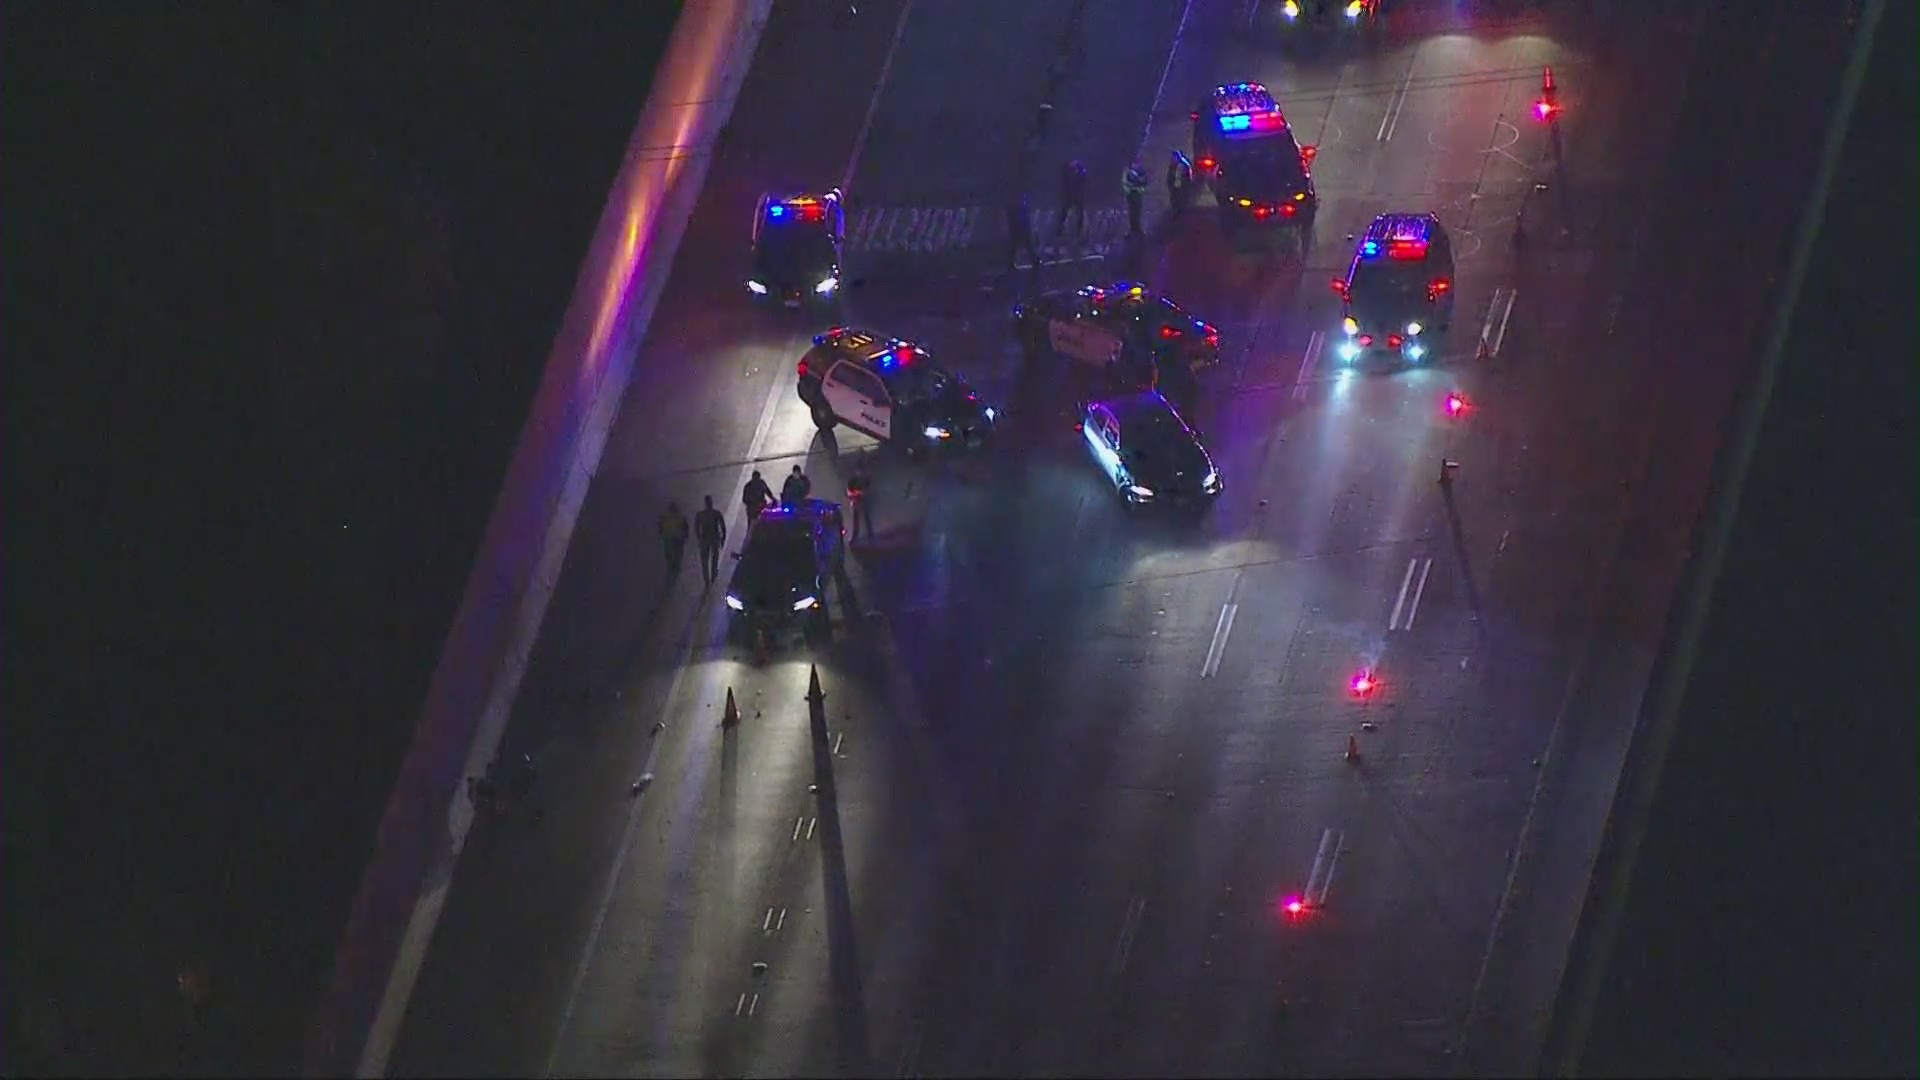 Officers respond to the 91 Freeway in Fullerton on Nov. 27, 2020. (Sky5)